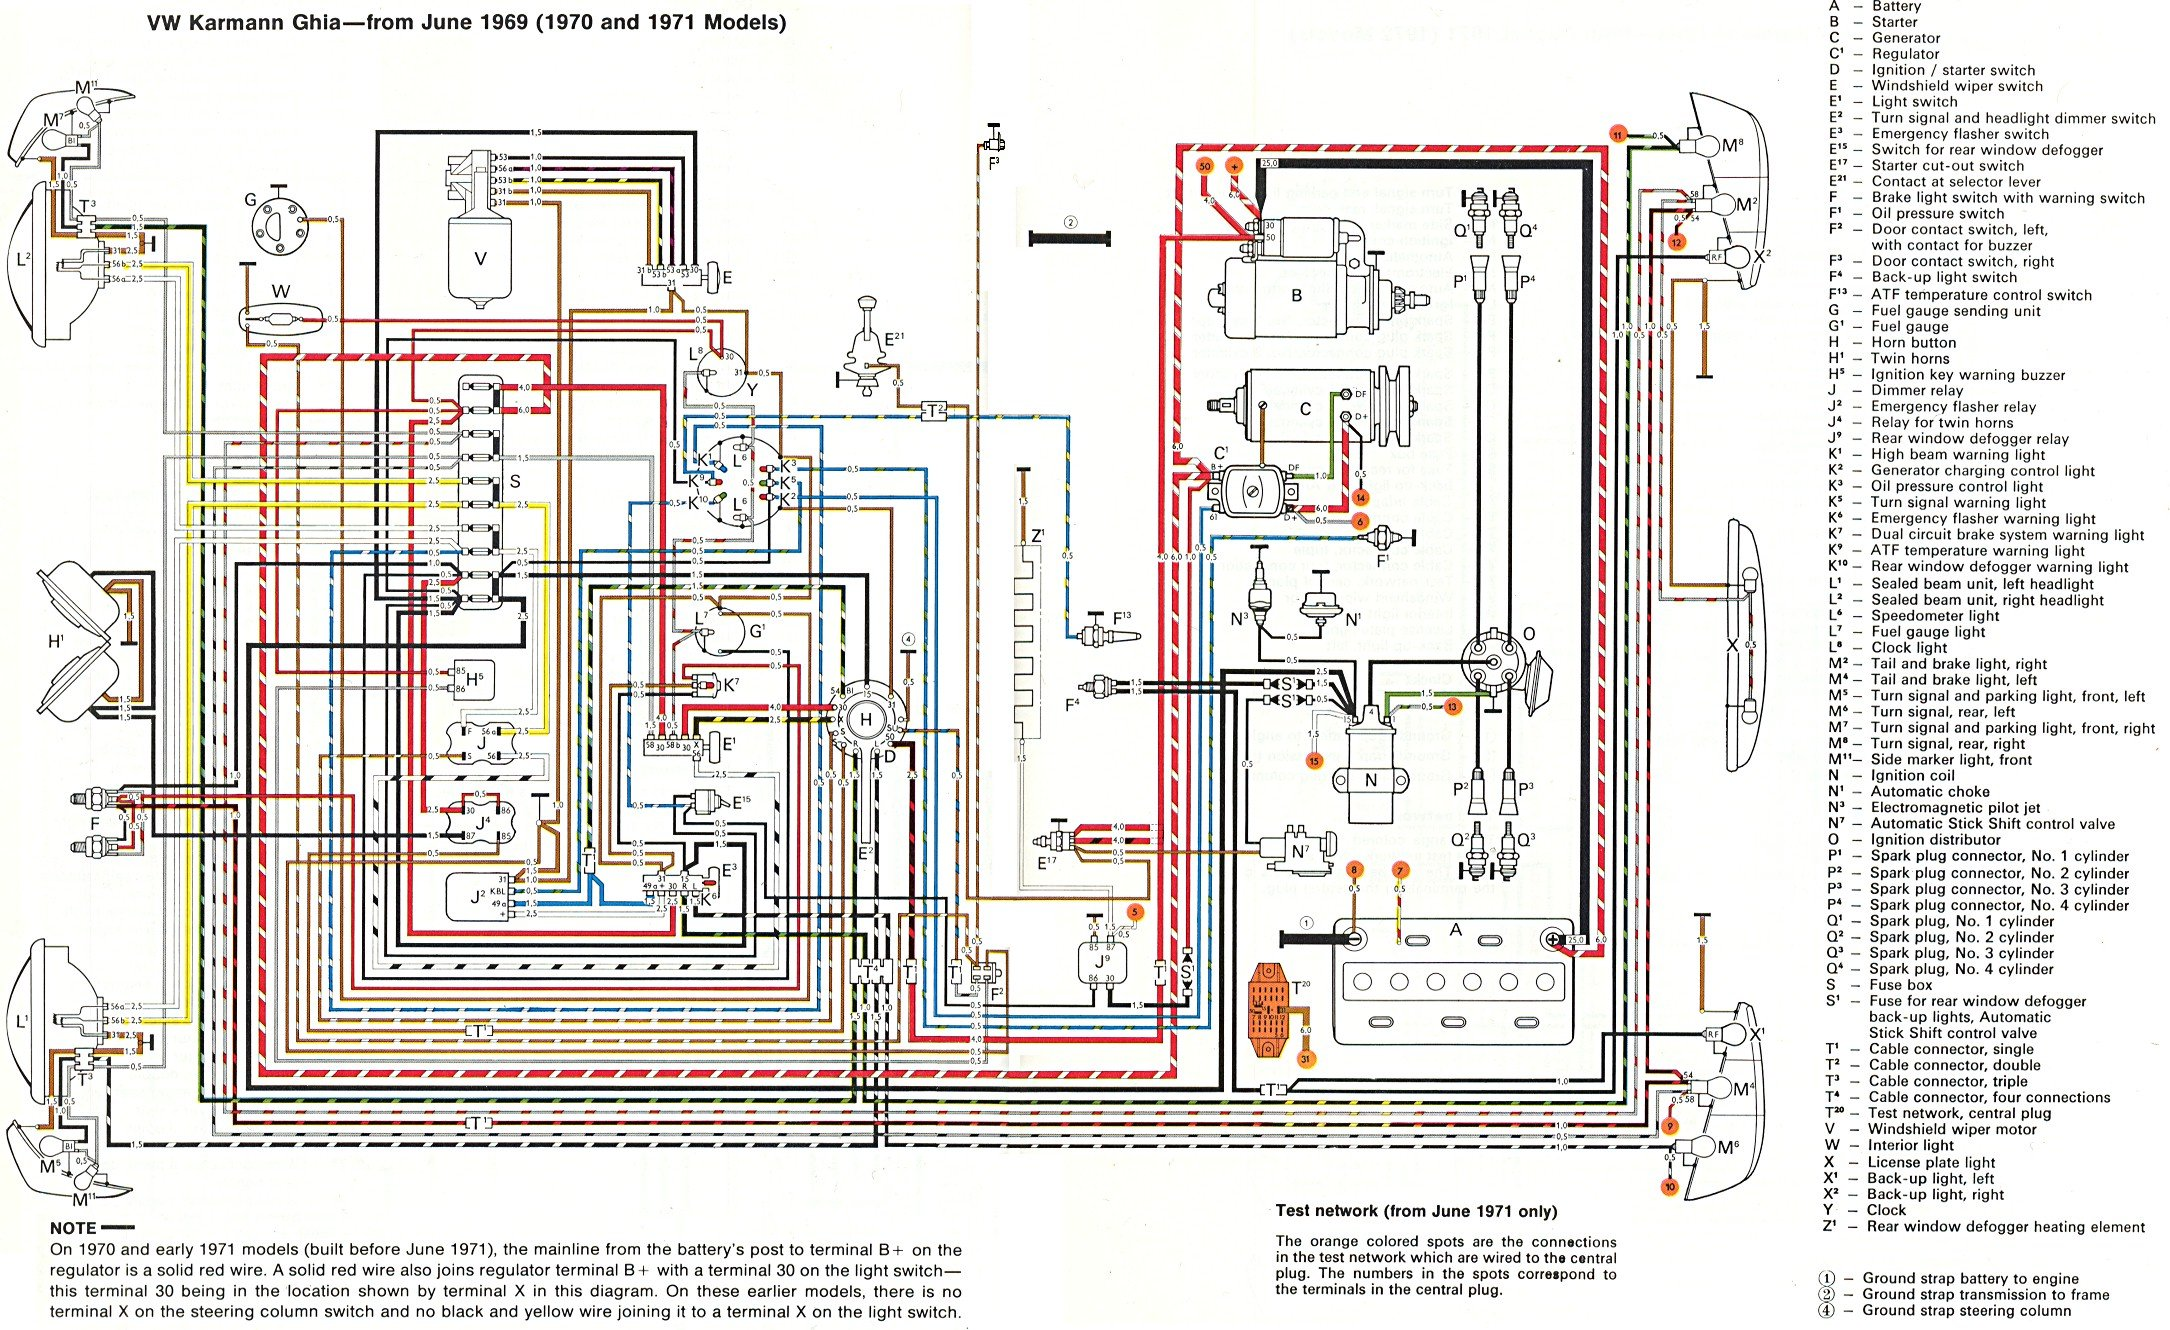 Karmann Ghia Wiring Diagrams 73 Vw Alternator